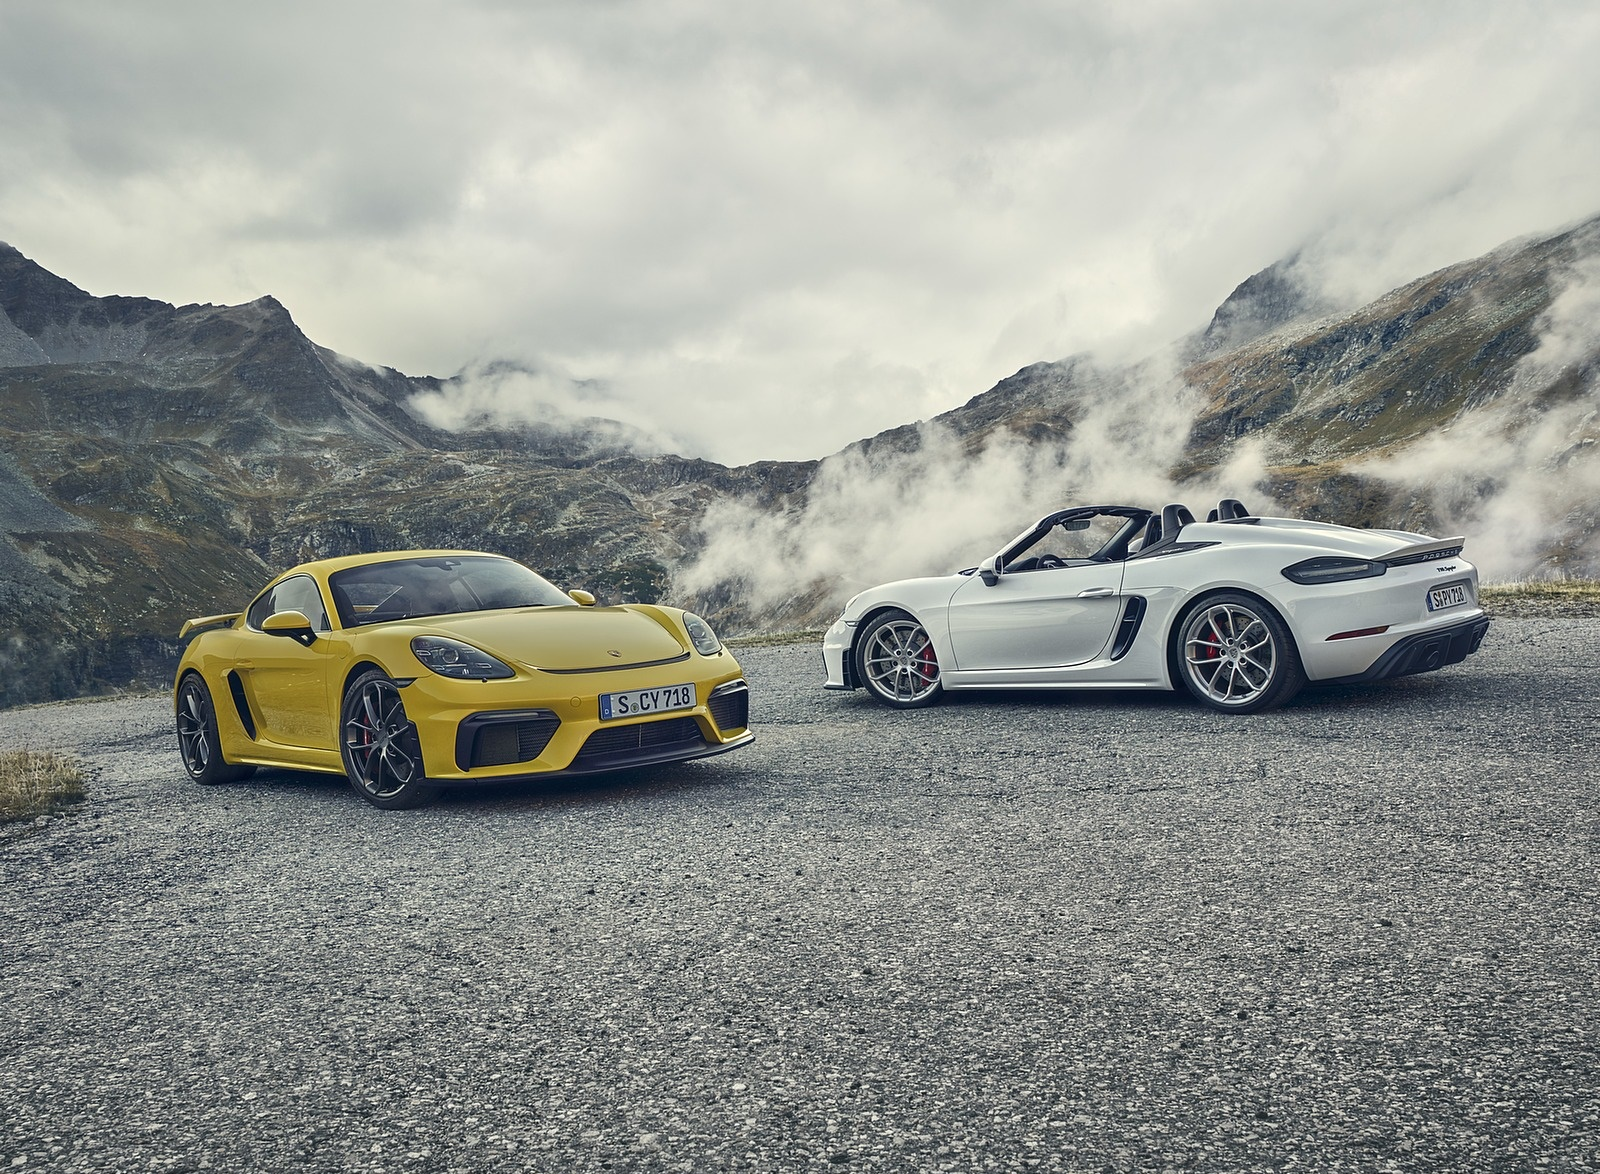 2020 Porsche 718 Cayman GT4 and 718 Spyder Wallpapers (1)